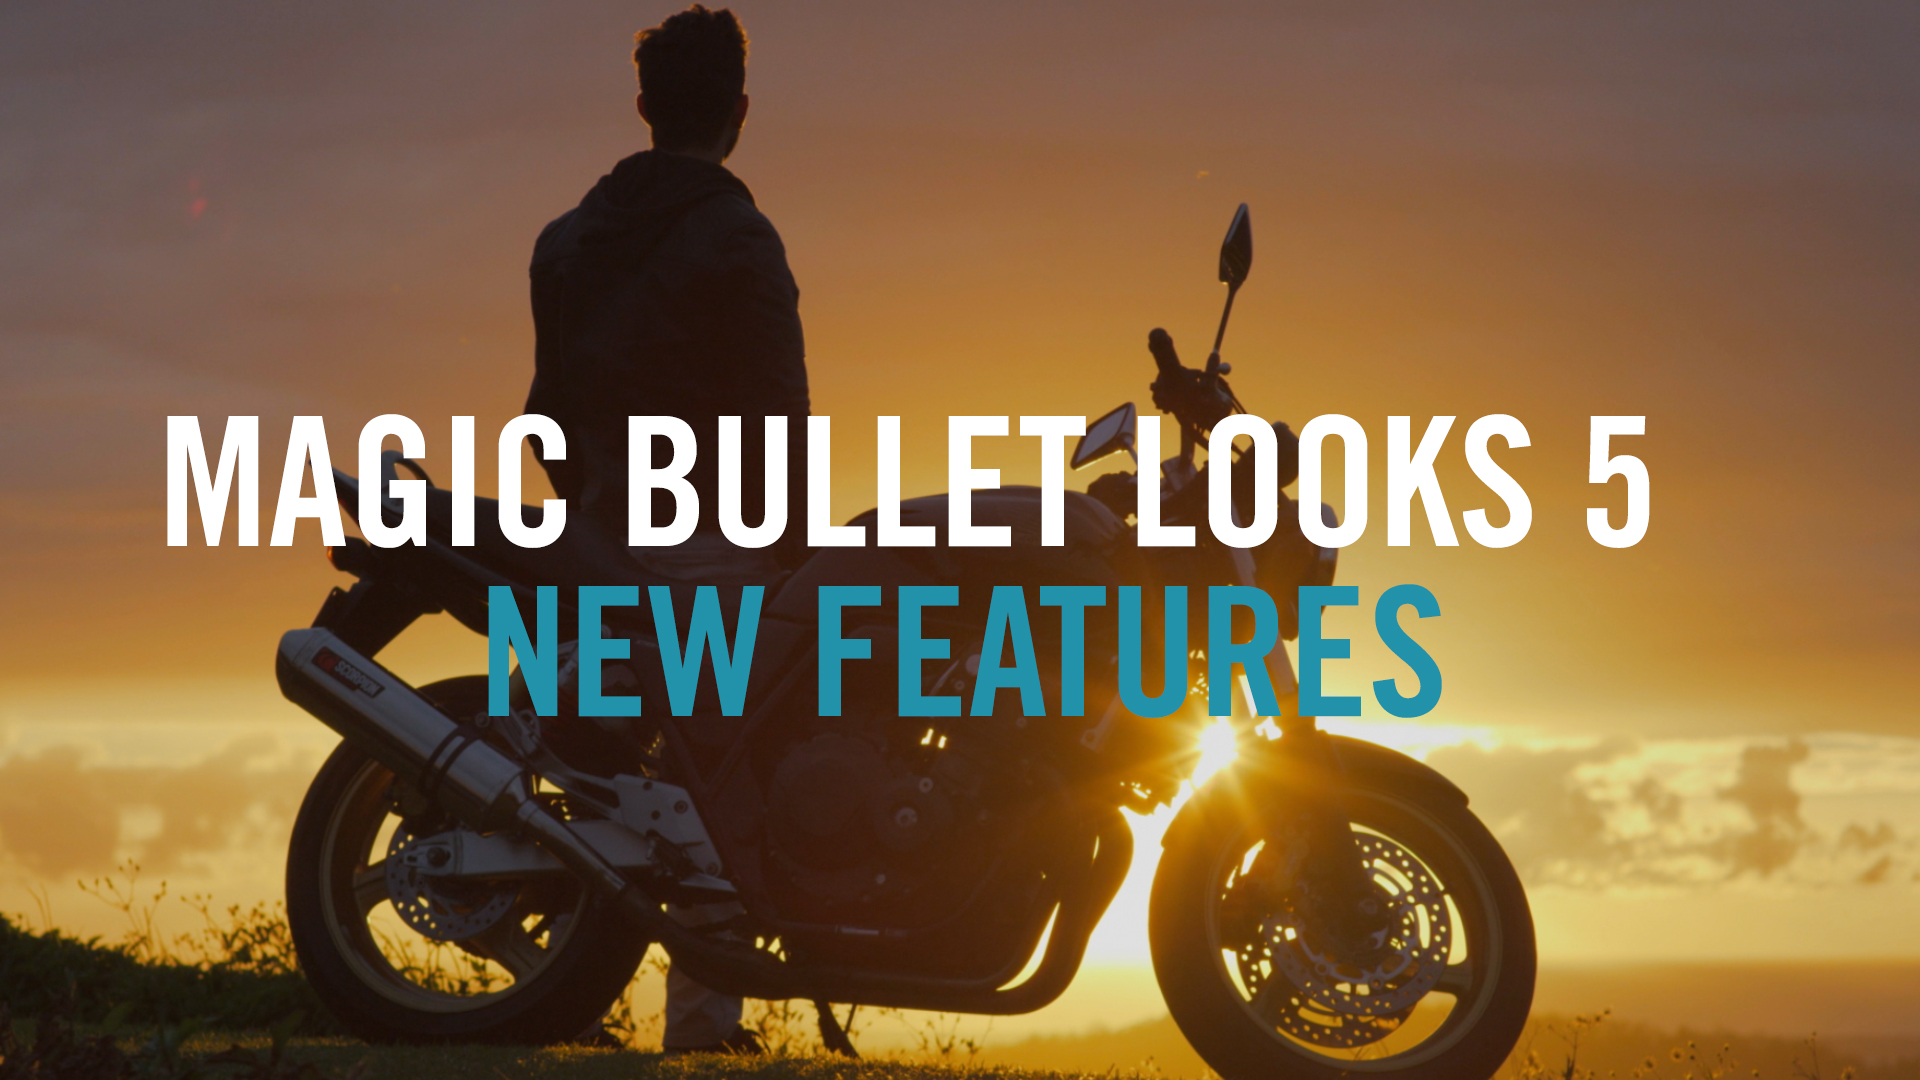 Magic Bullet Looks 5- New Features